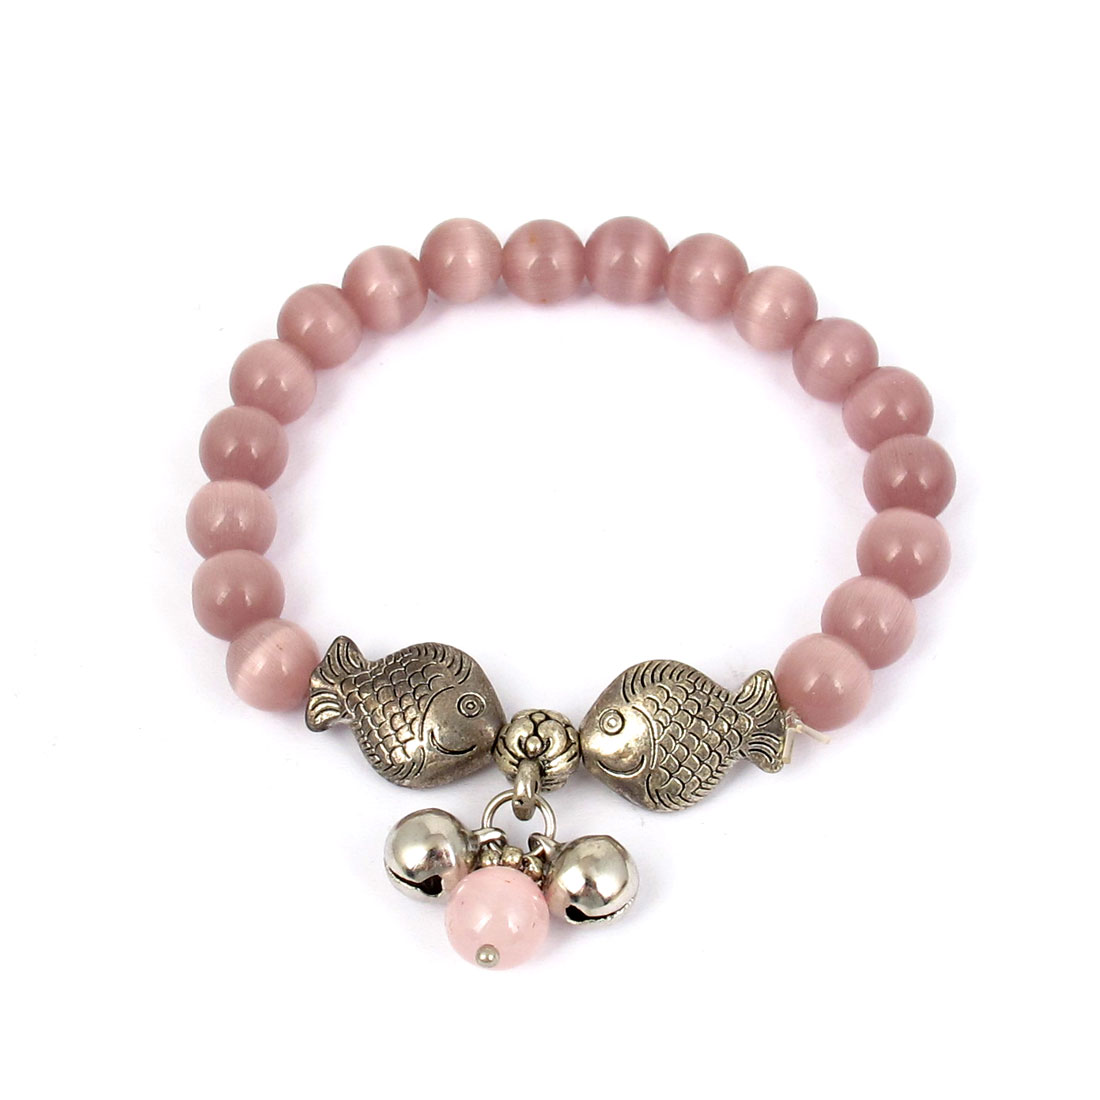 Fish Detail Round Opal Bead Wrist Ornament Bangle Bracelet Light Purple Silver Tone for Women